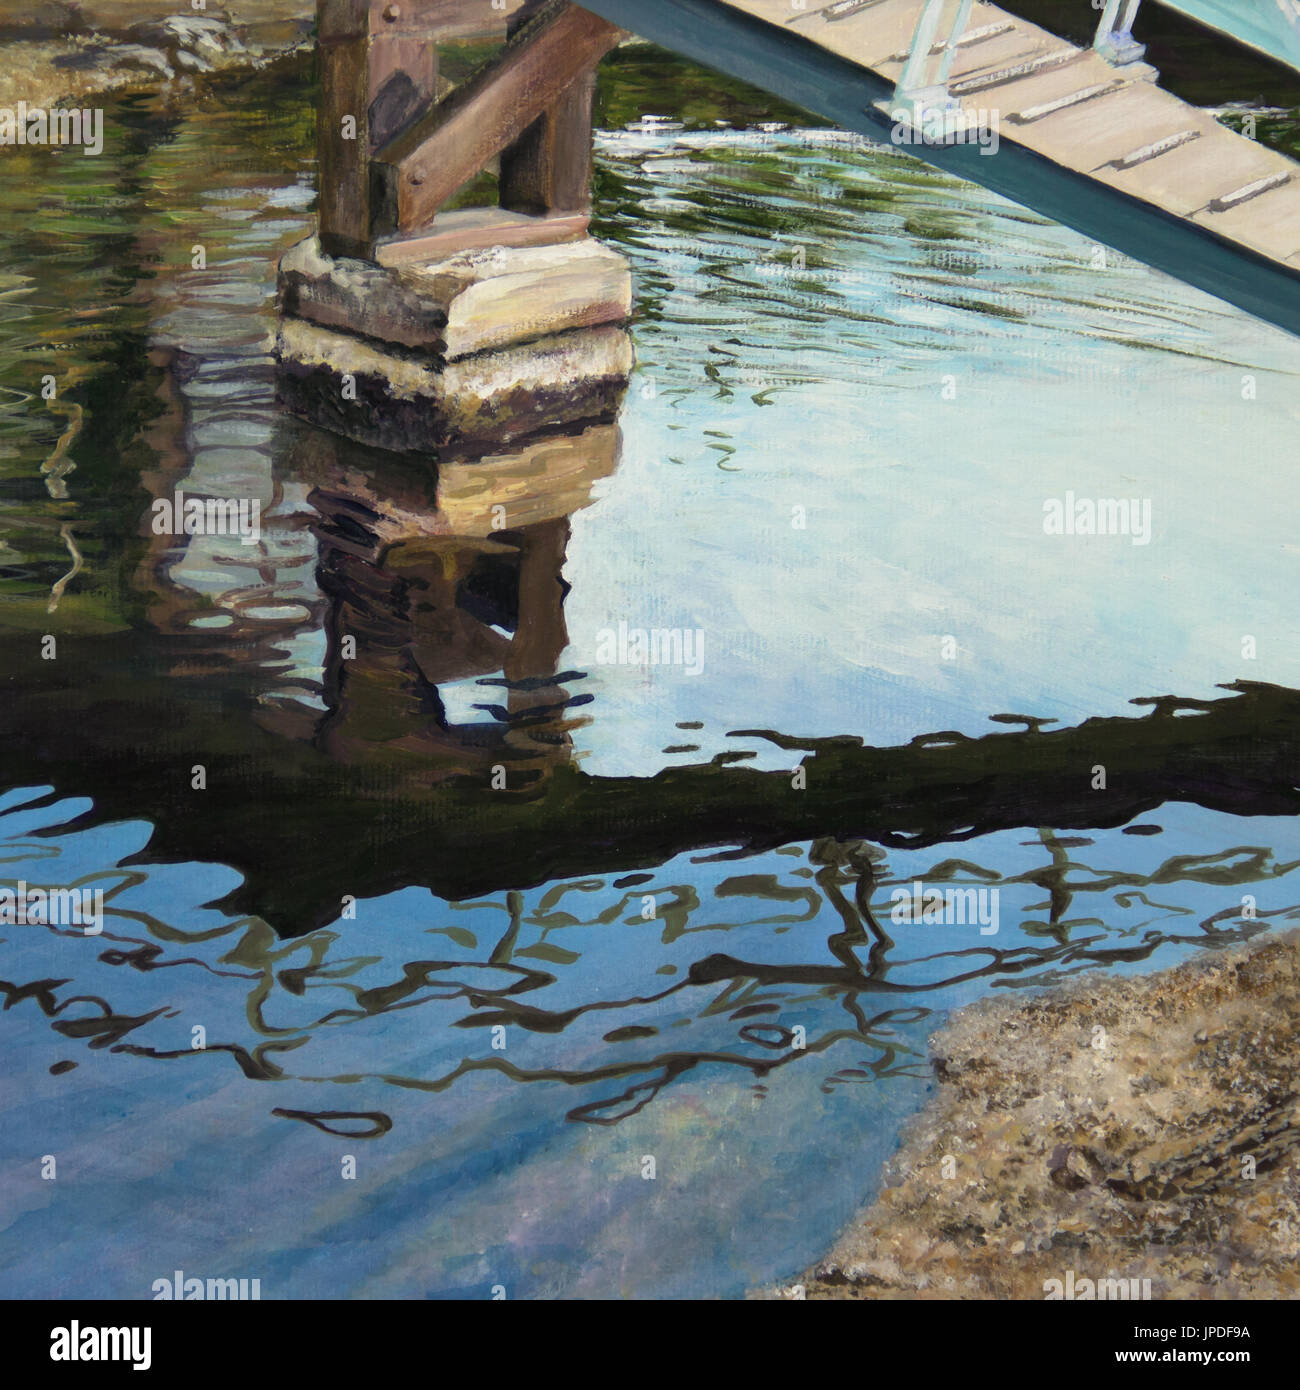 The underwater shore gleams under dark, rippled reflections of the bridge overhead in a canal in Venice, CA, in an acrylic painting. - Stock Image